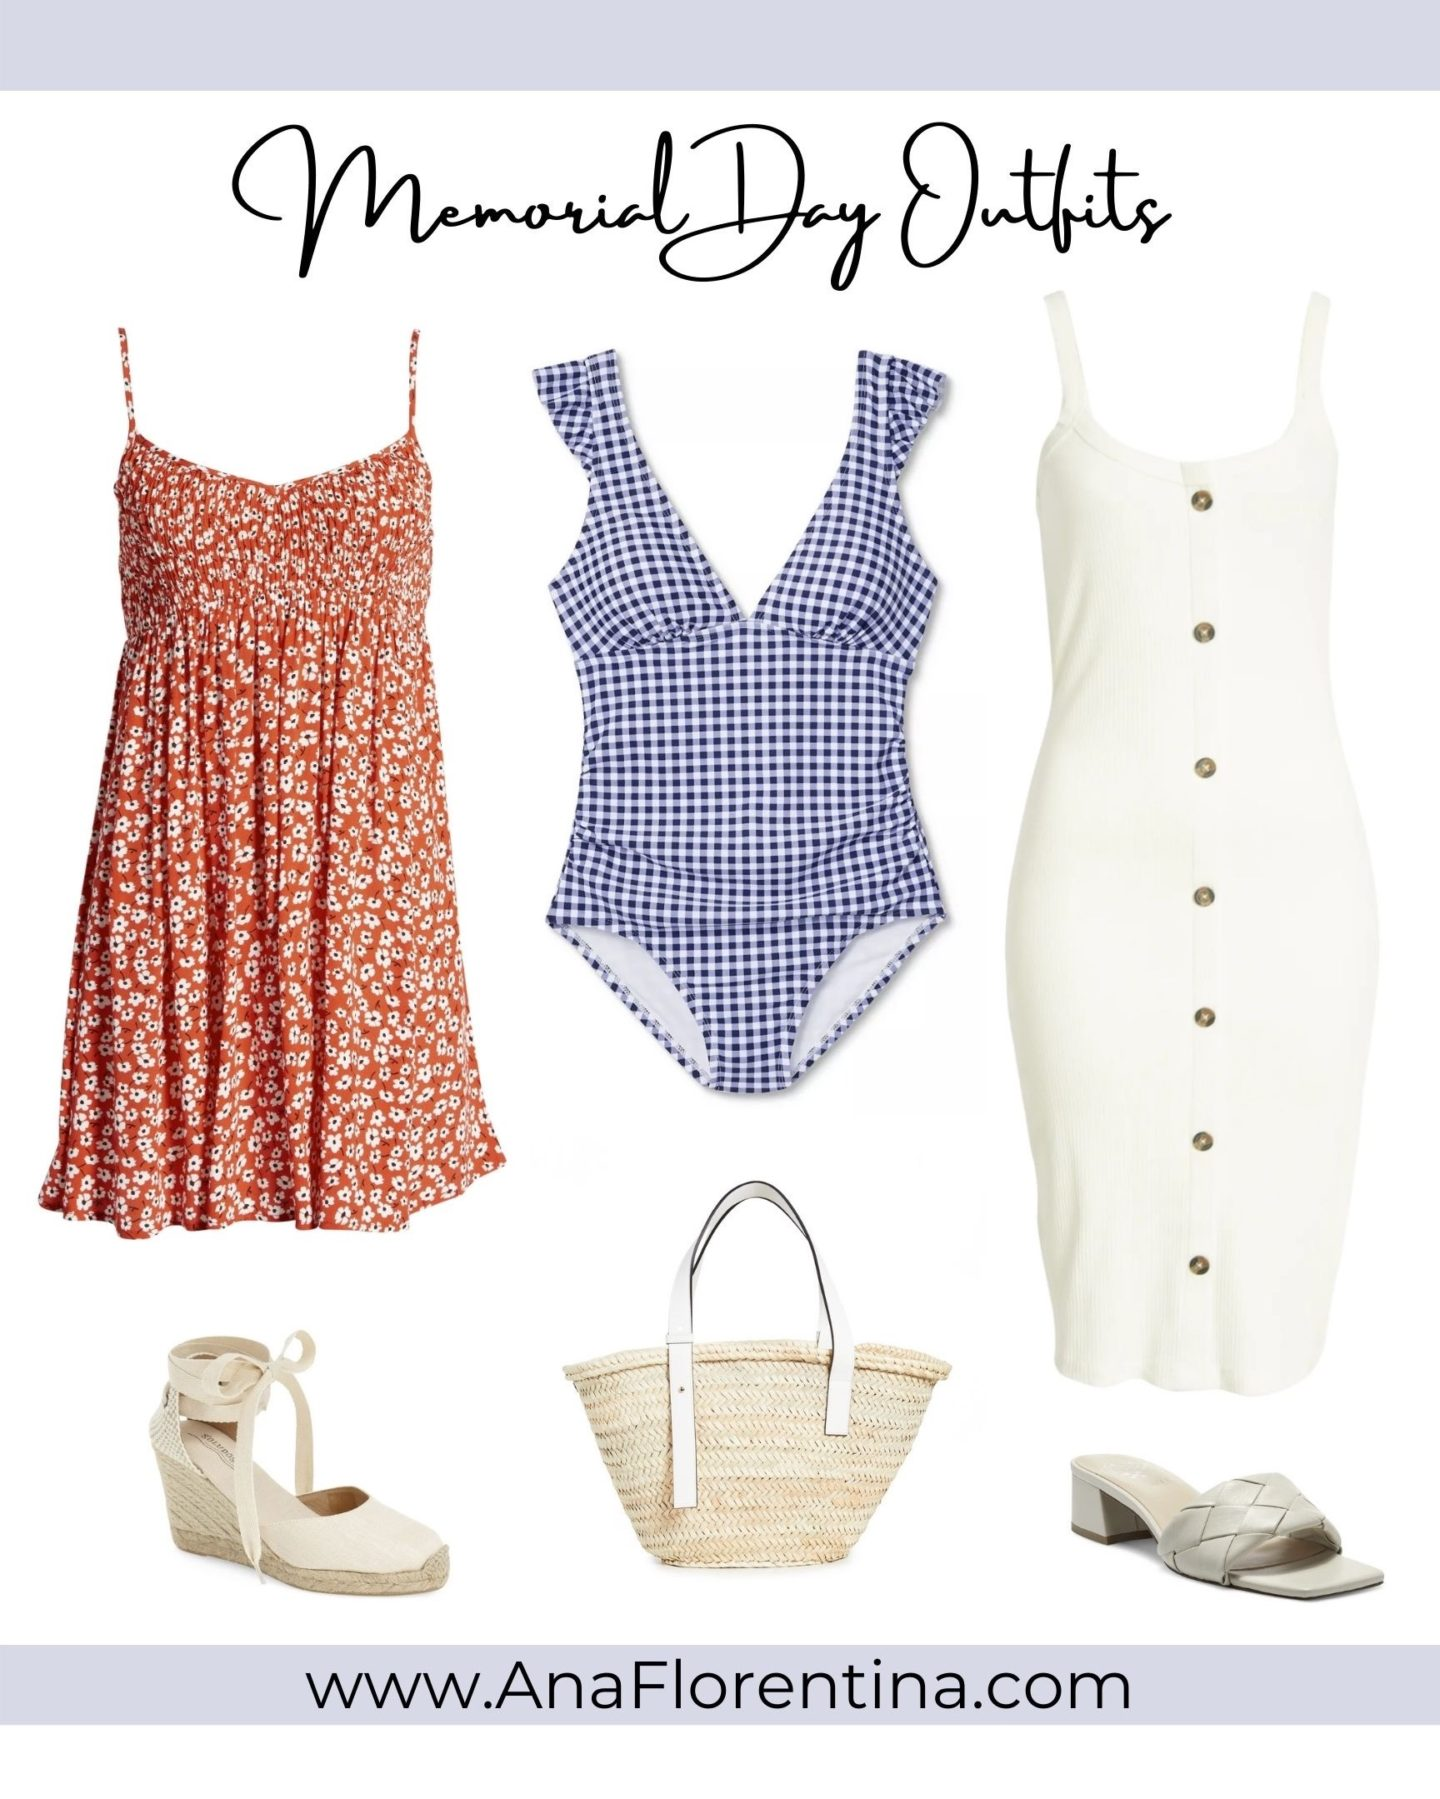 Memorial Day Outfits and Sales